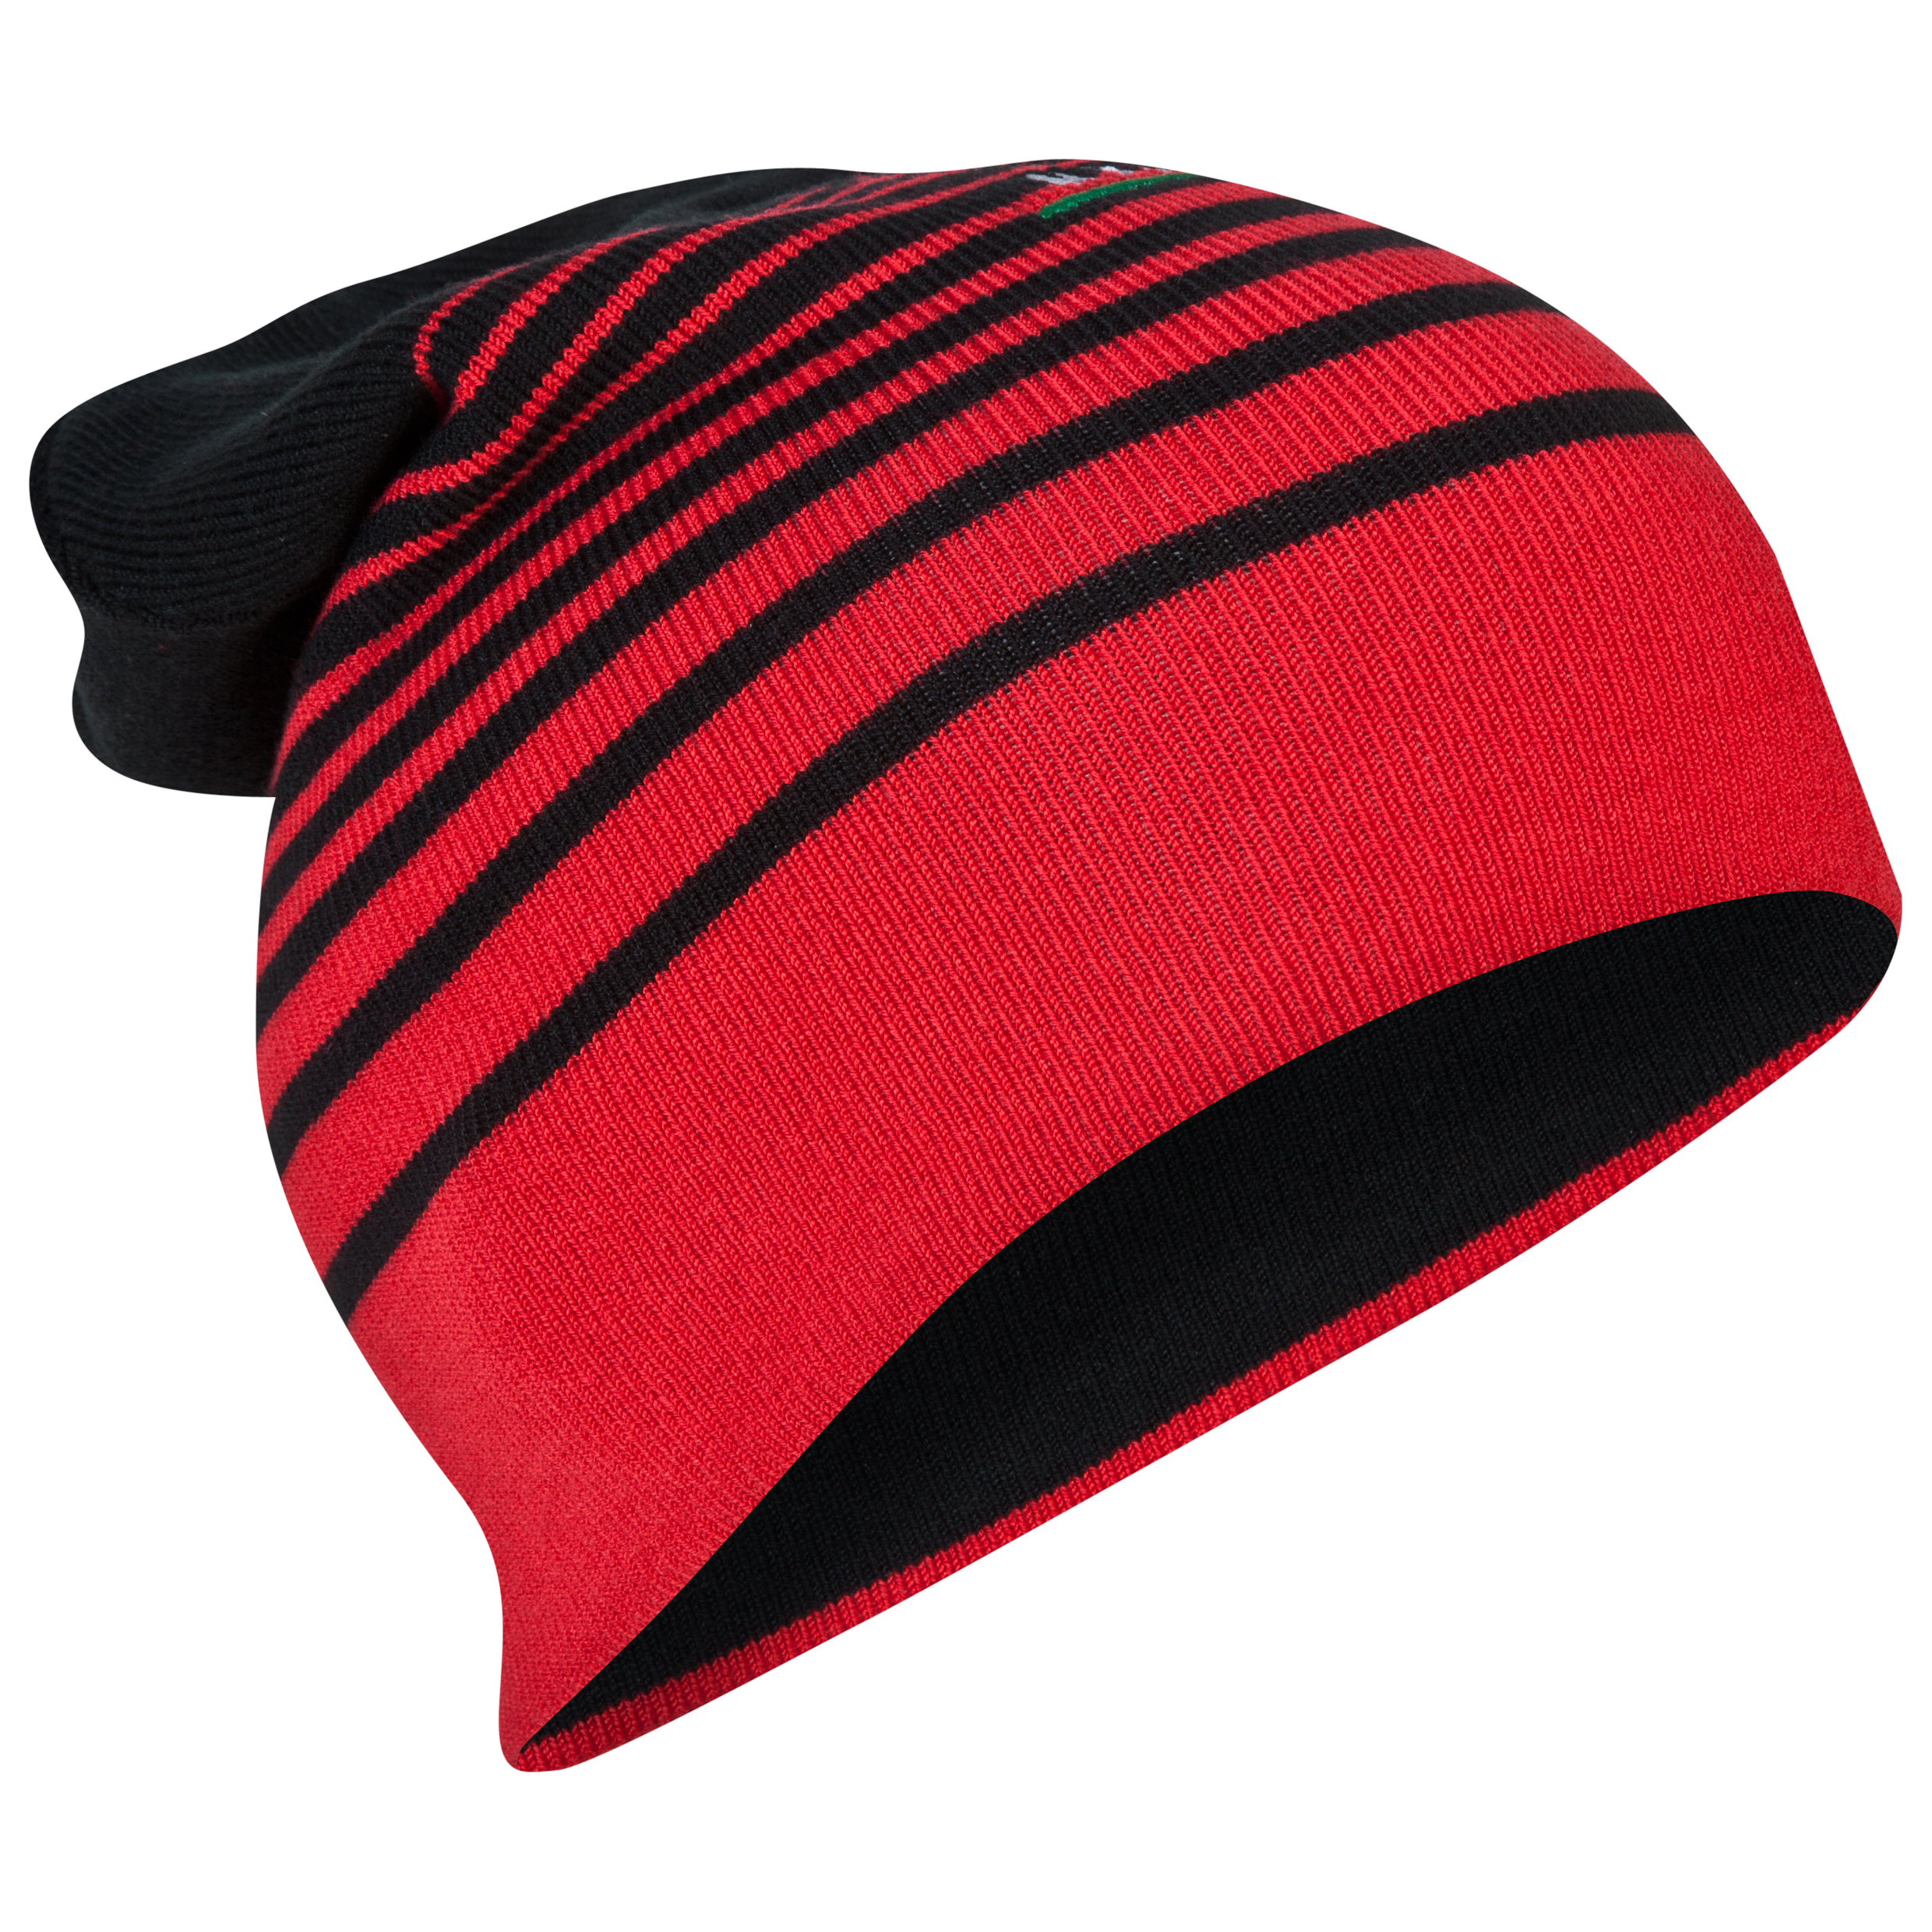 Wales Rugby Union Switch It Up Beanie - Red/Black/White